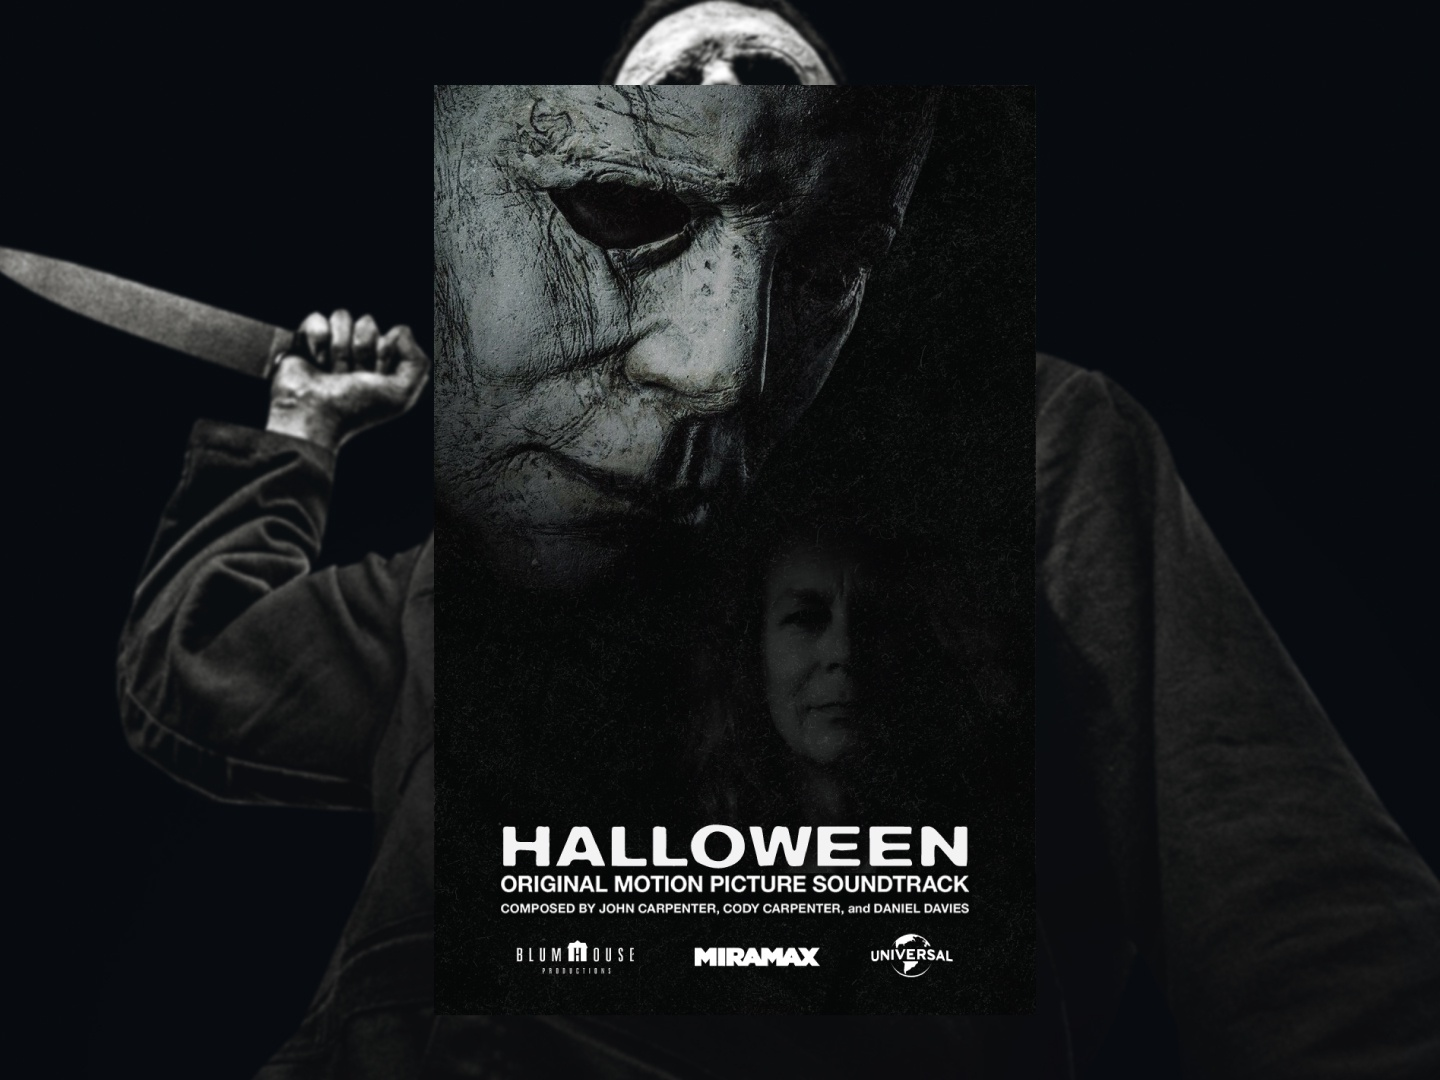 Halloween Movie Poster 2018.Halloween 2018 Concept Movie Poster By Jonathan Carrillo On Dribbble